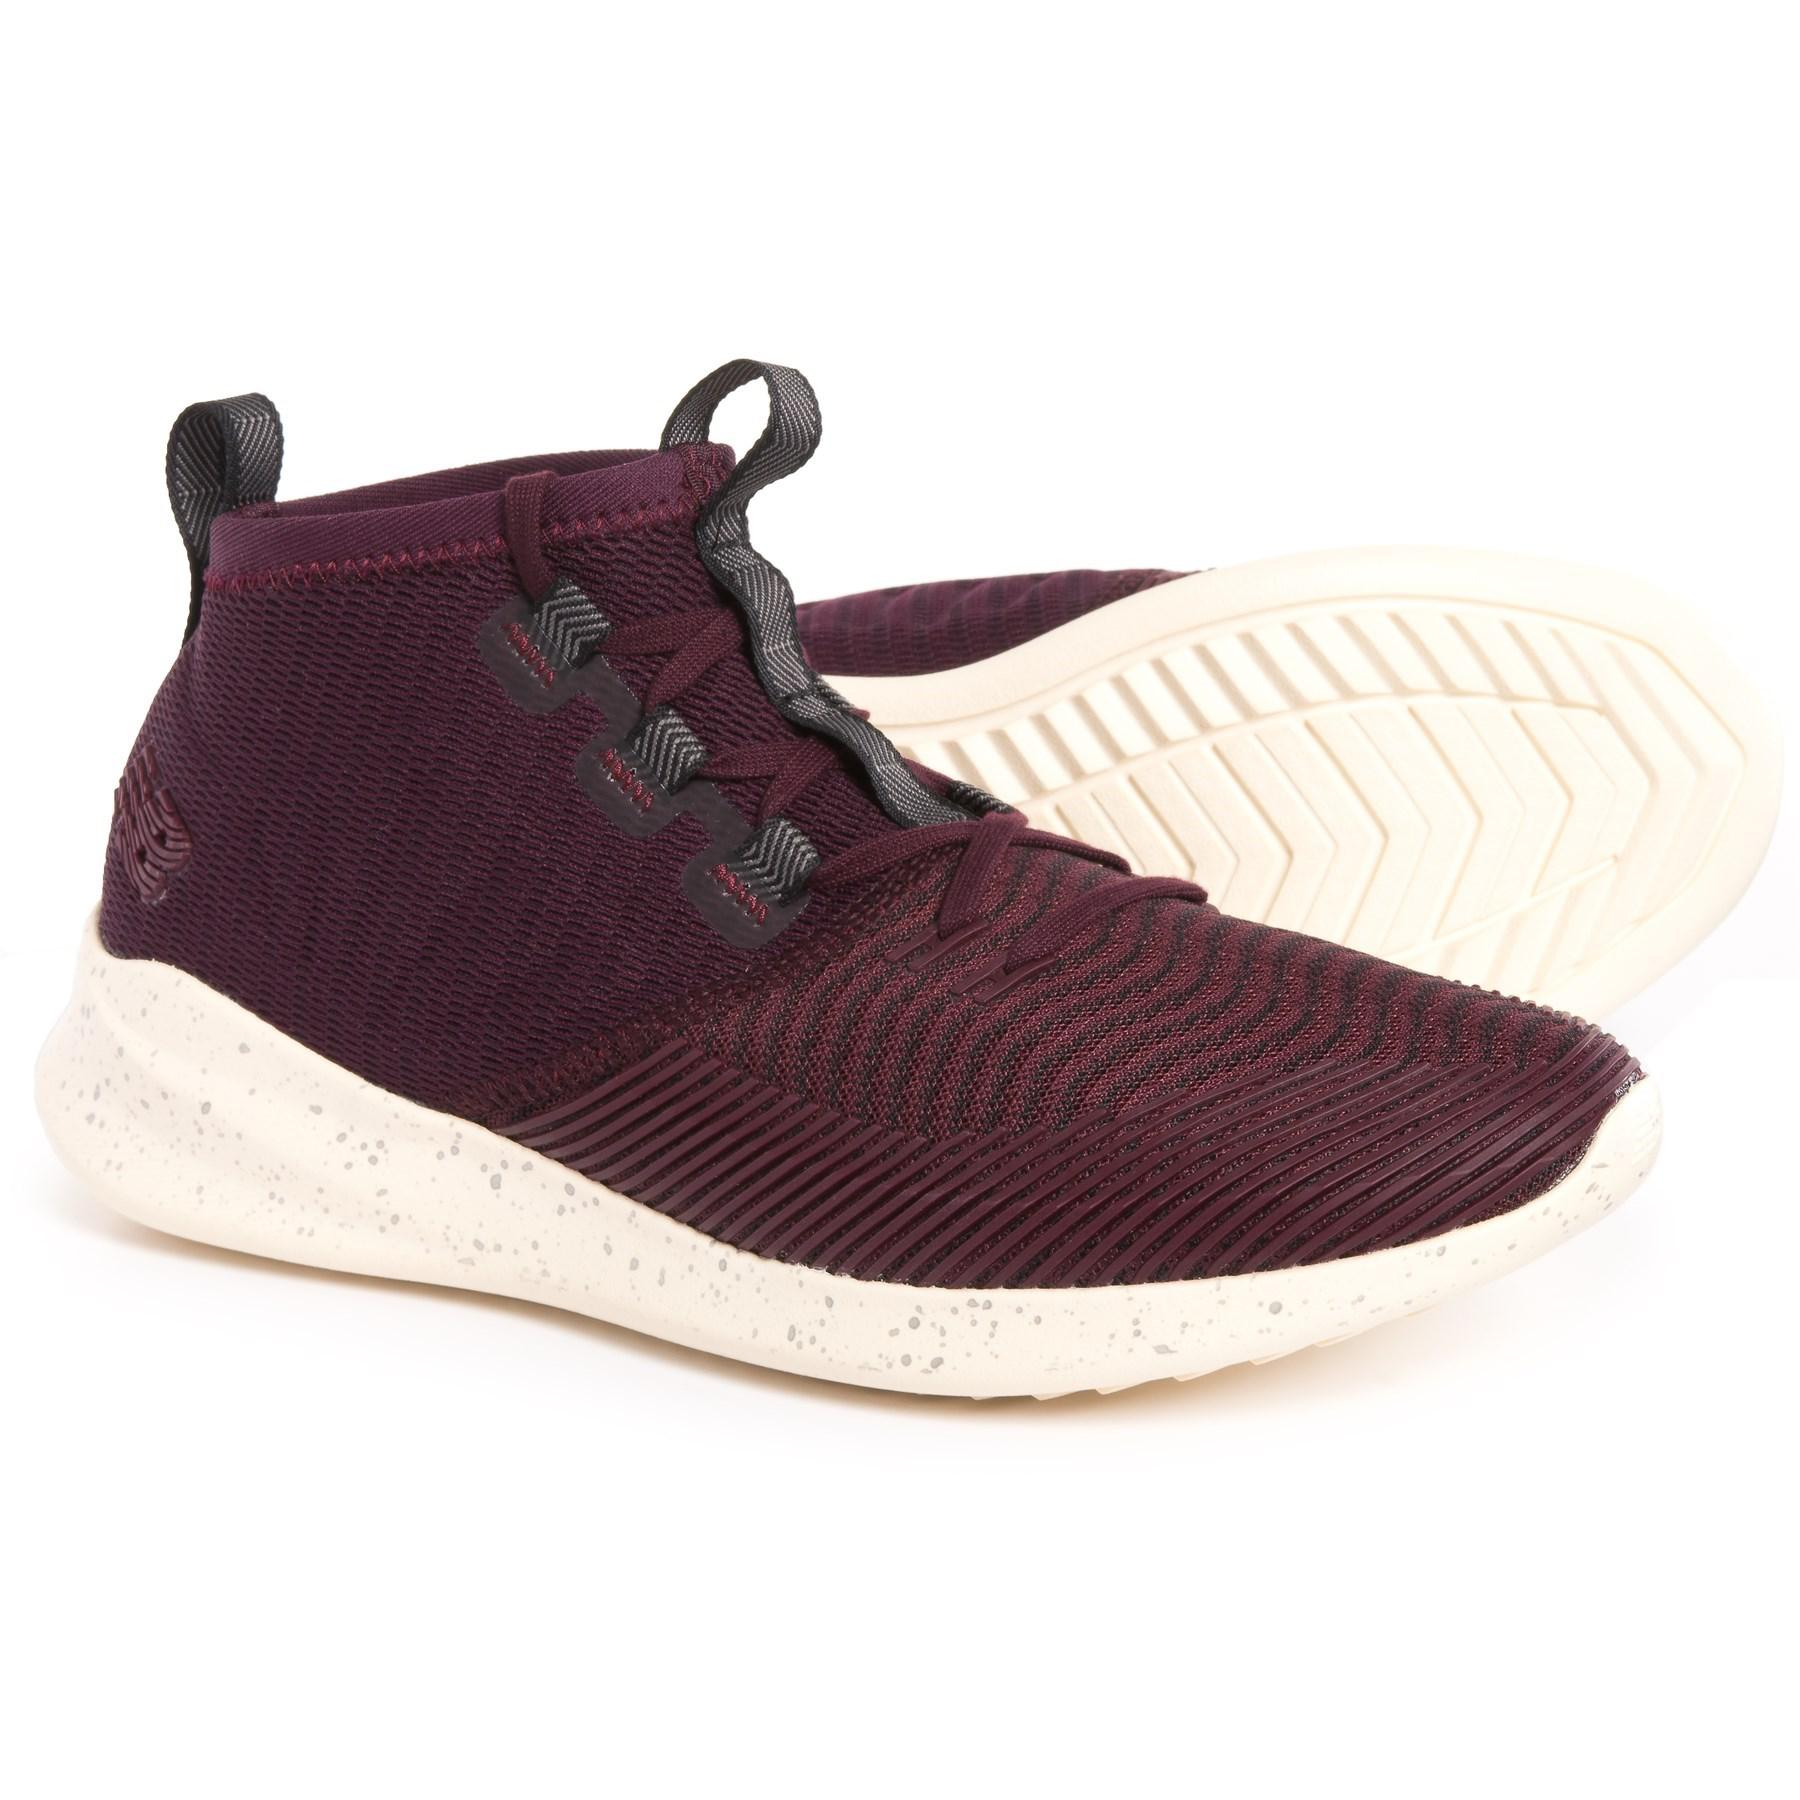 Lyst - New Balance Cypher Run Cross-training Shoes (for Men) in ... 26b455be76d